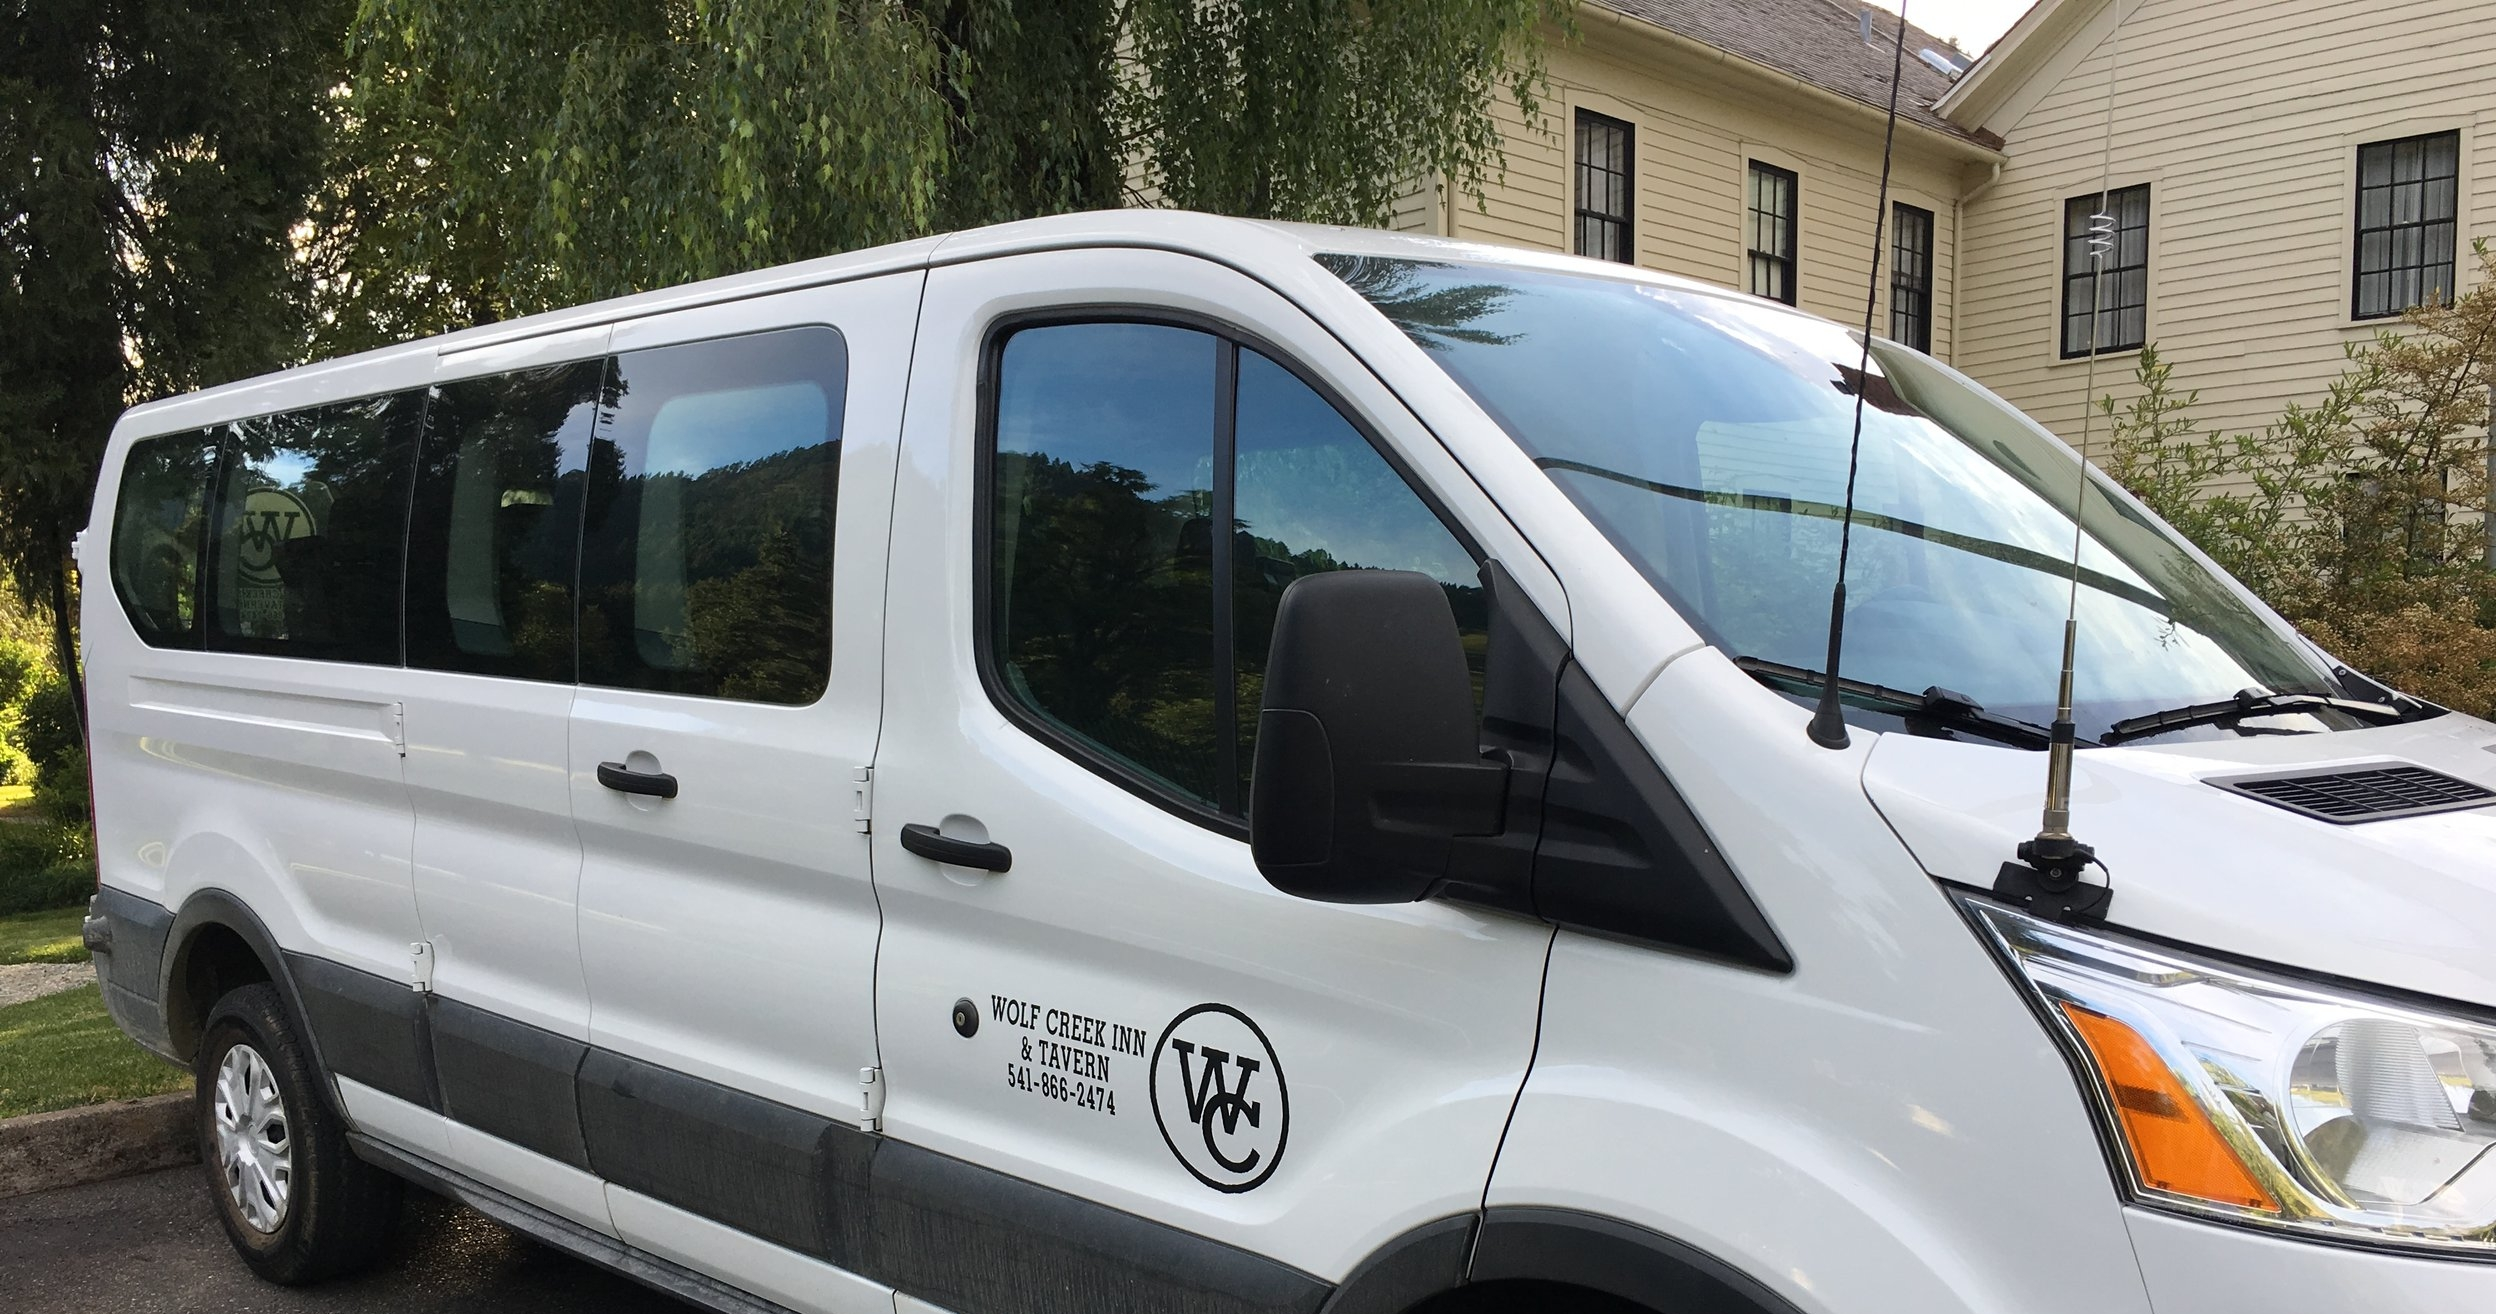 We can even haul you and your guests! - Contact us for more details!